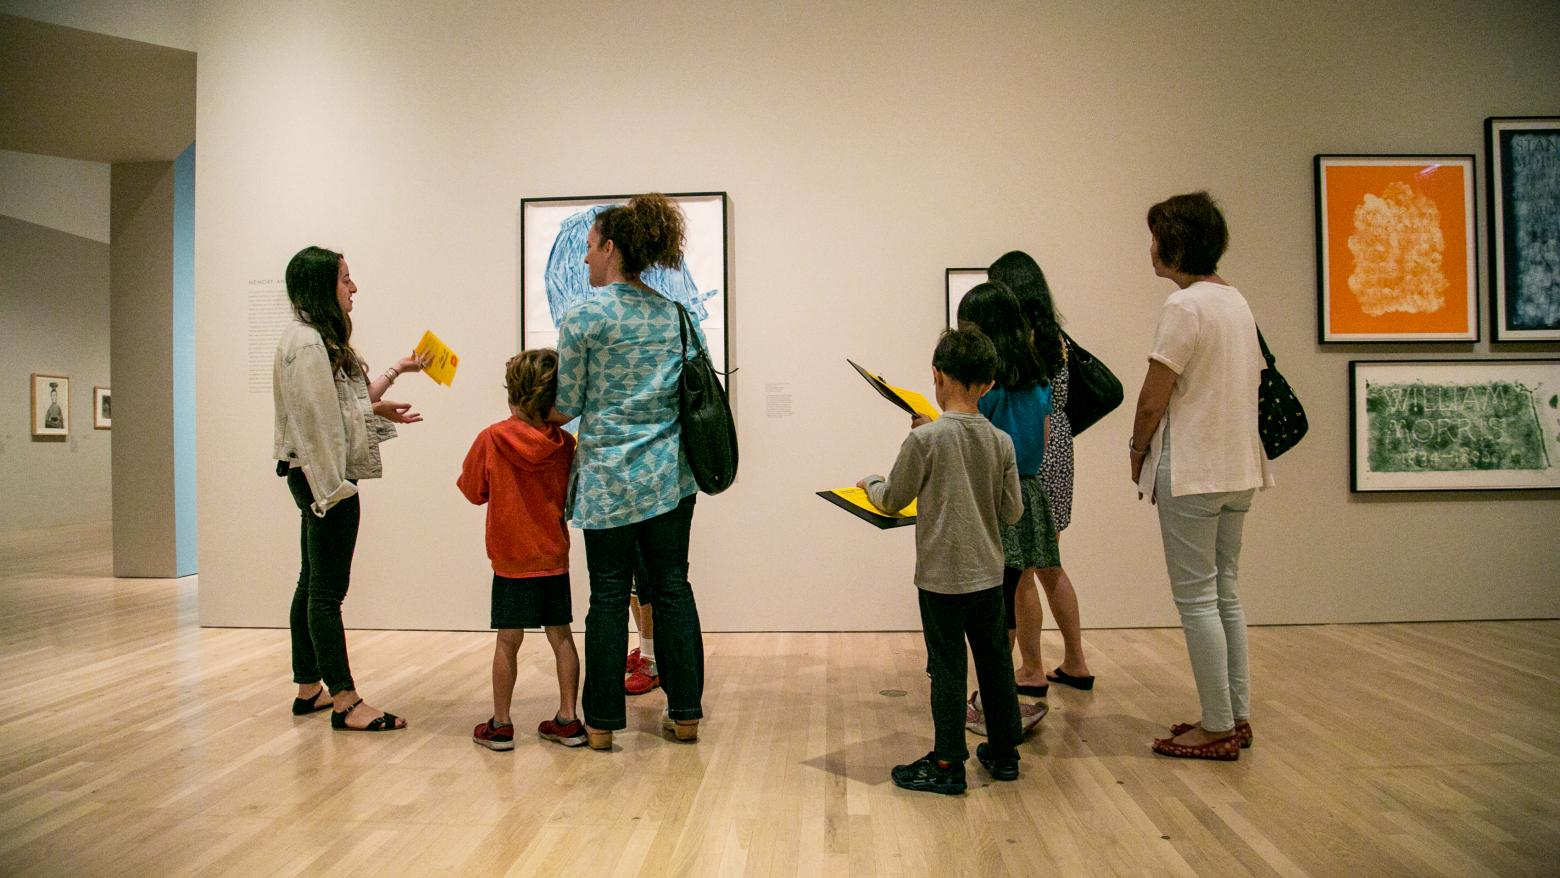 K-12 tours at the Hammer Museum